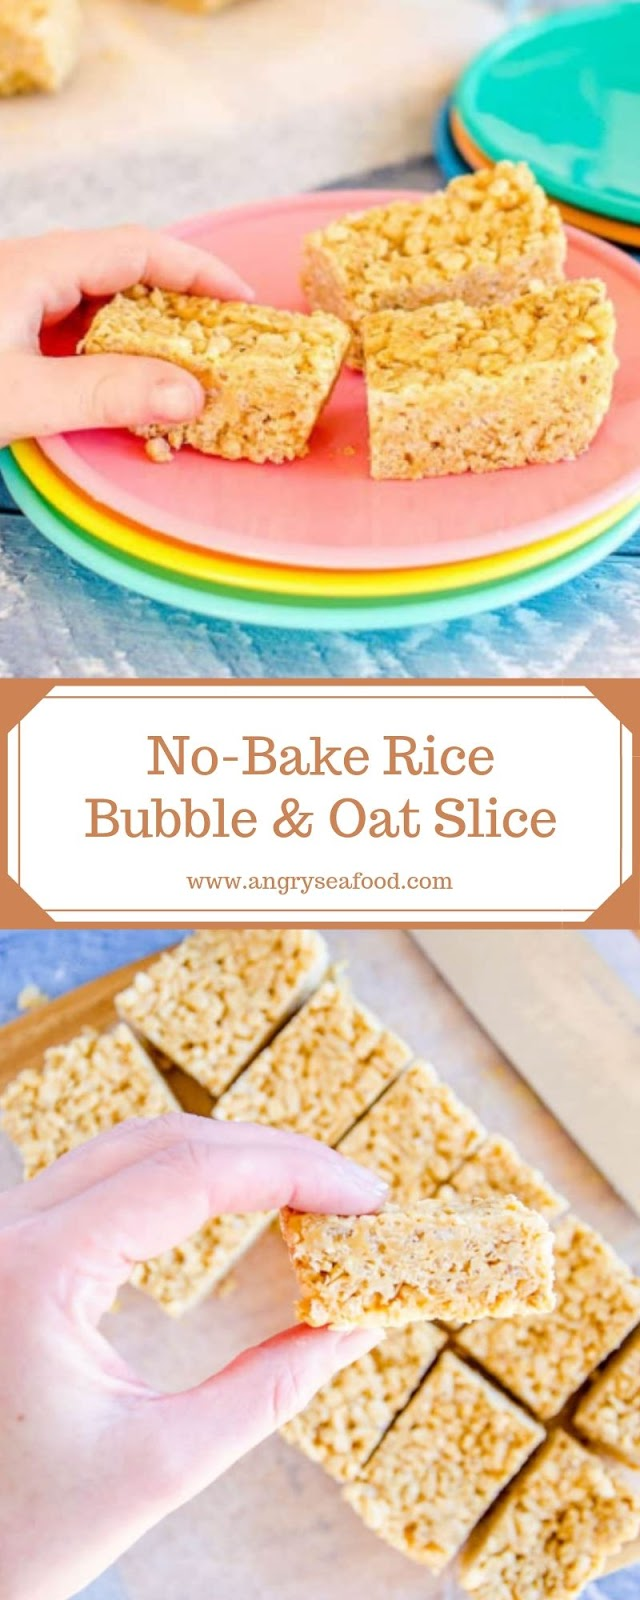 No-Bake Rice Bubble & Oat Slice